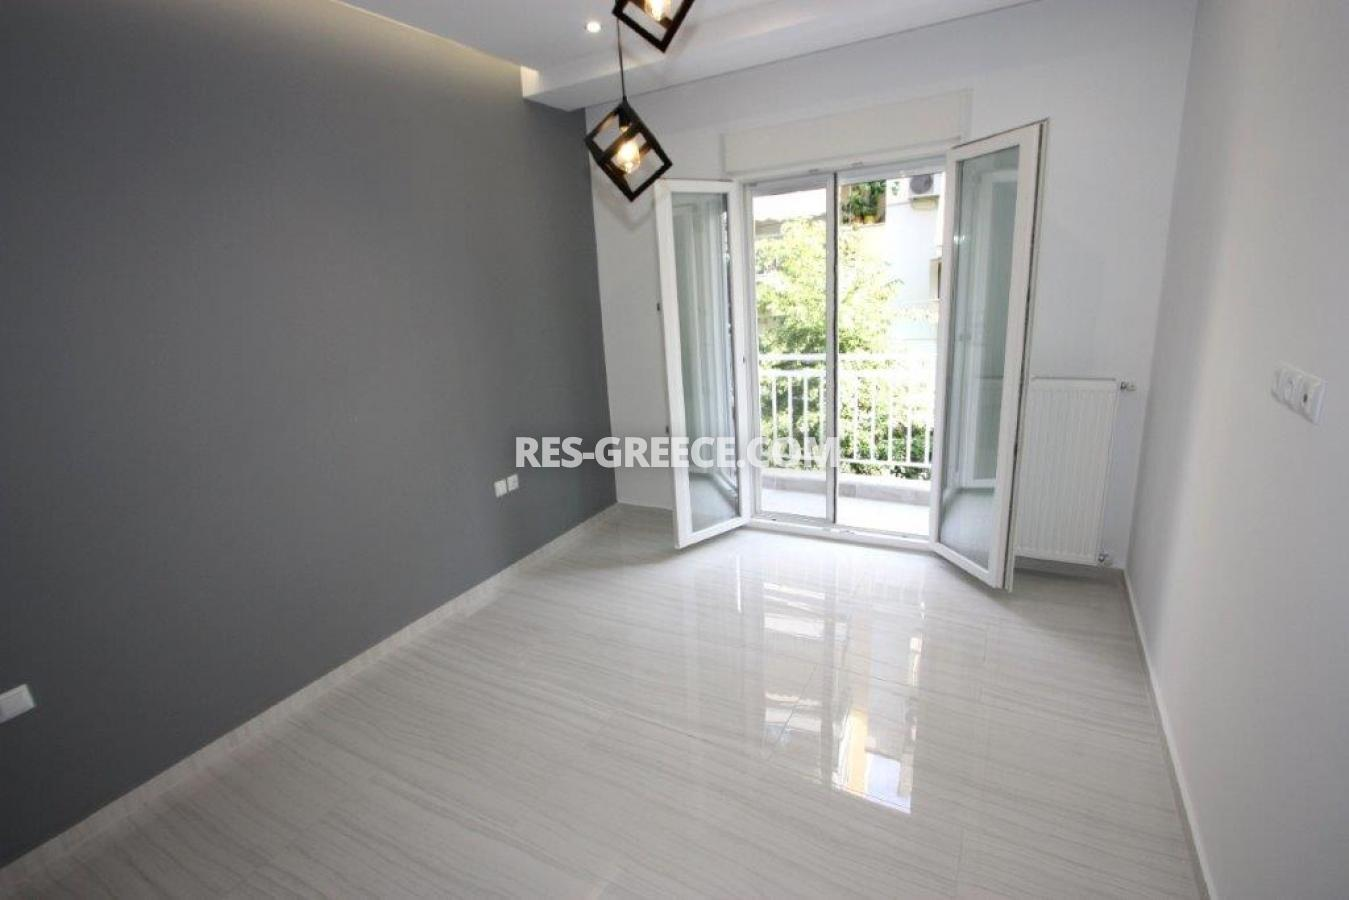 Poli 21, Central Macedonia, Greece - Apartment for residence or for long term rent - Photo 10